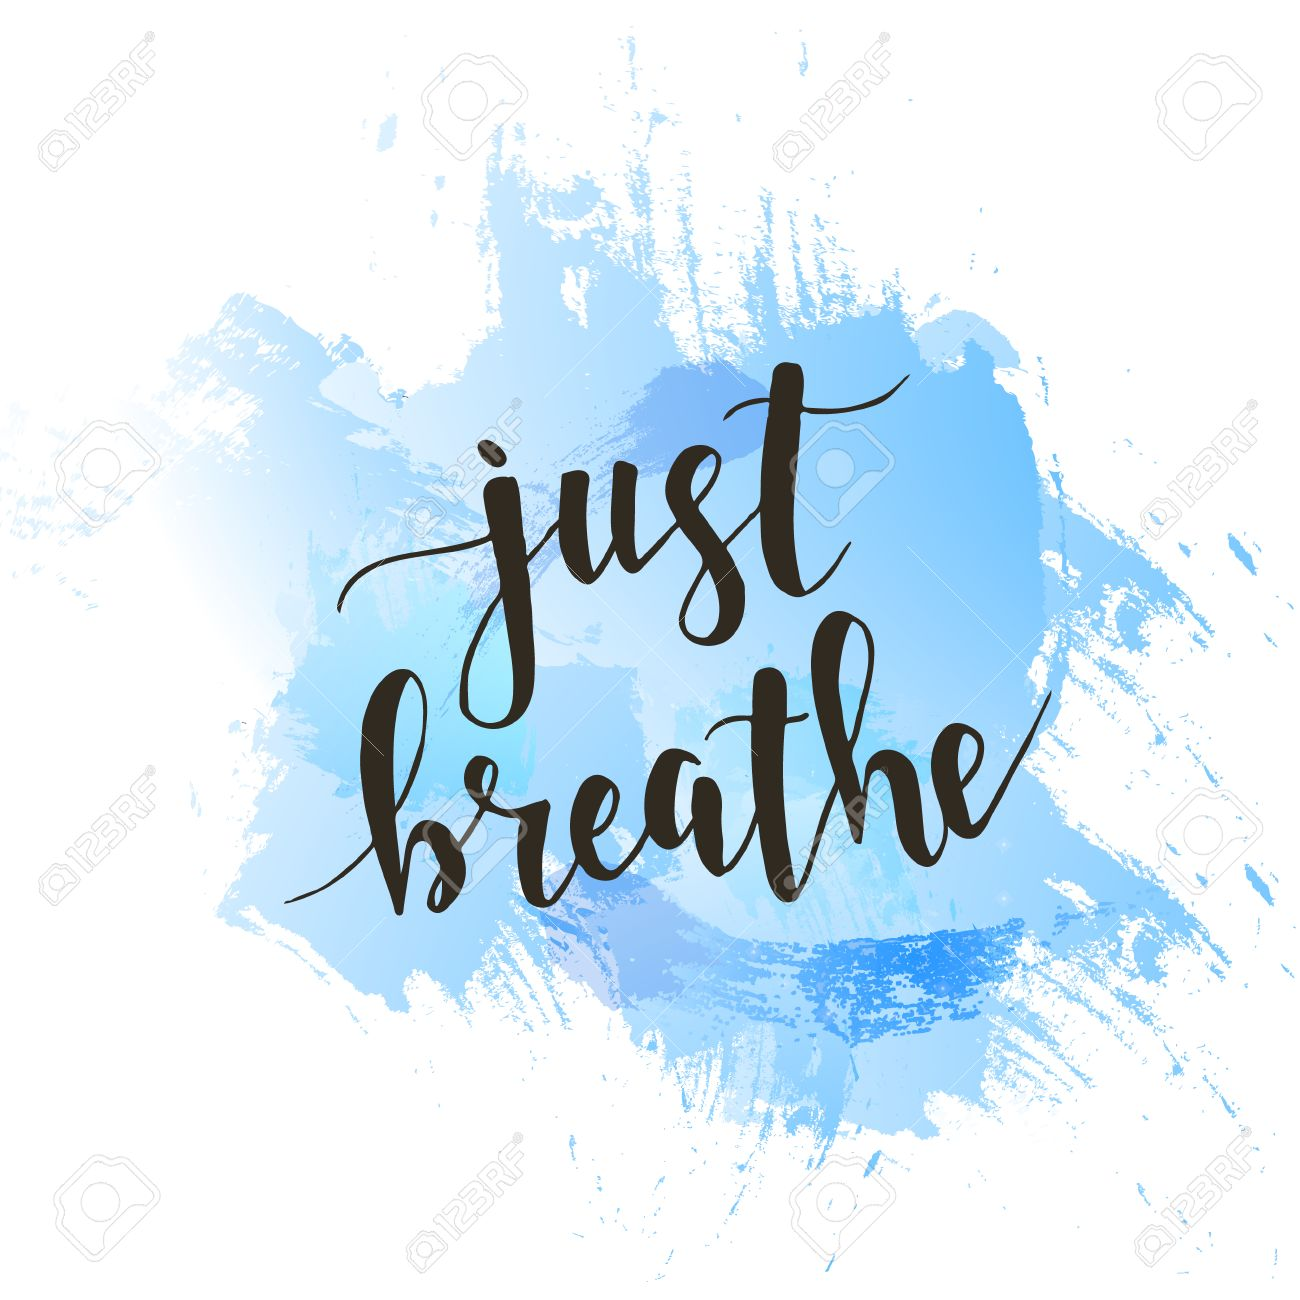 Just Breathe. T-shirt hand lettered calligraphic design. Inspirational vector typography. Vector illustration. - 54953163